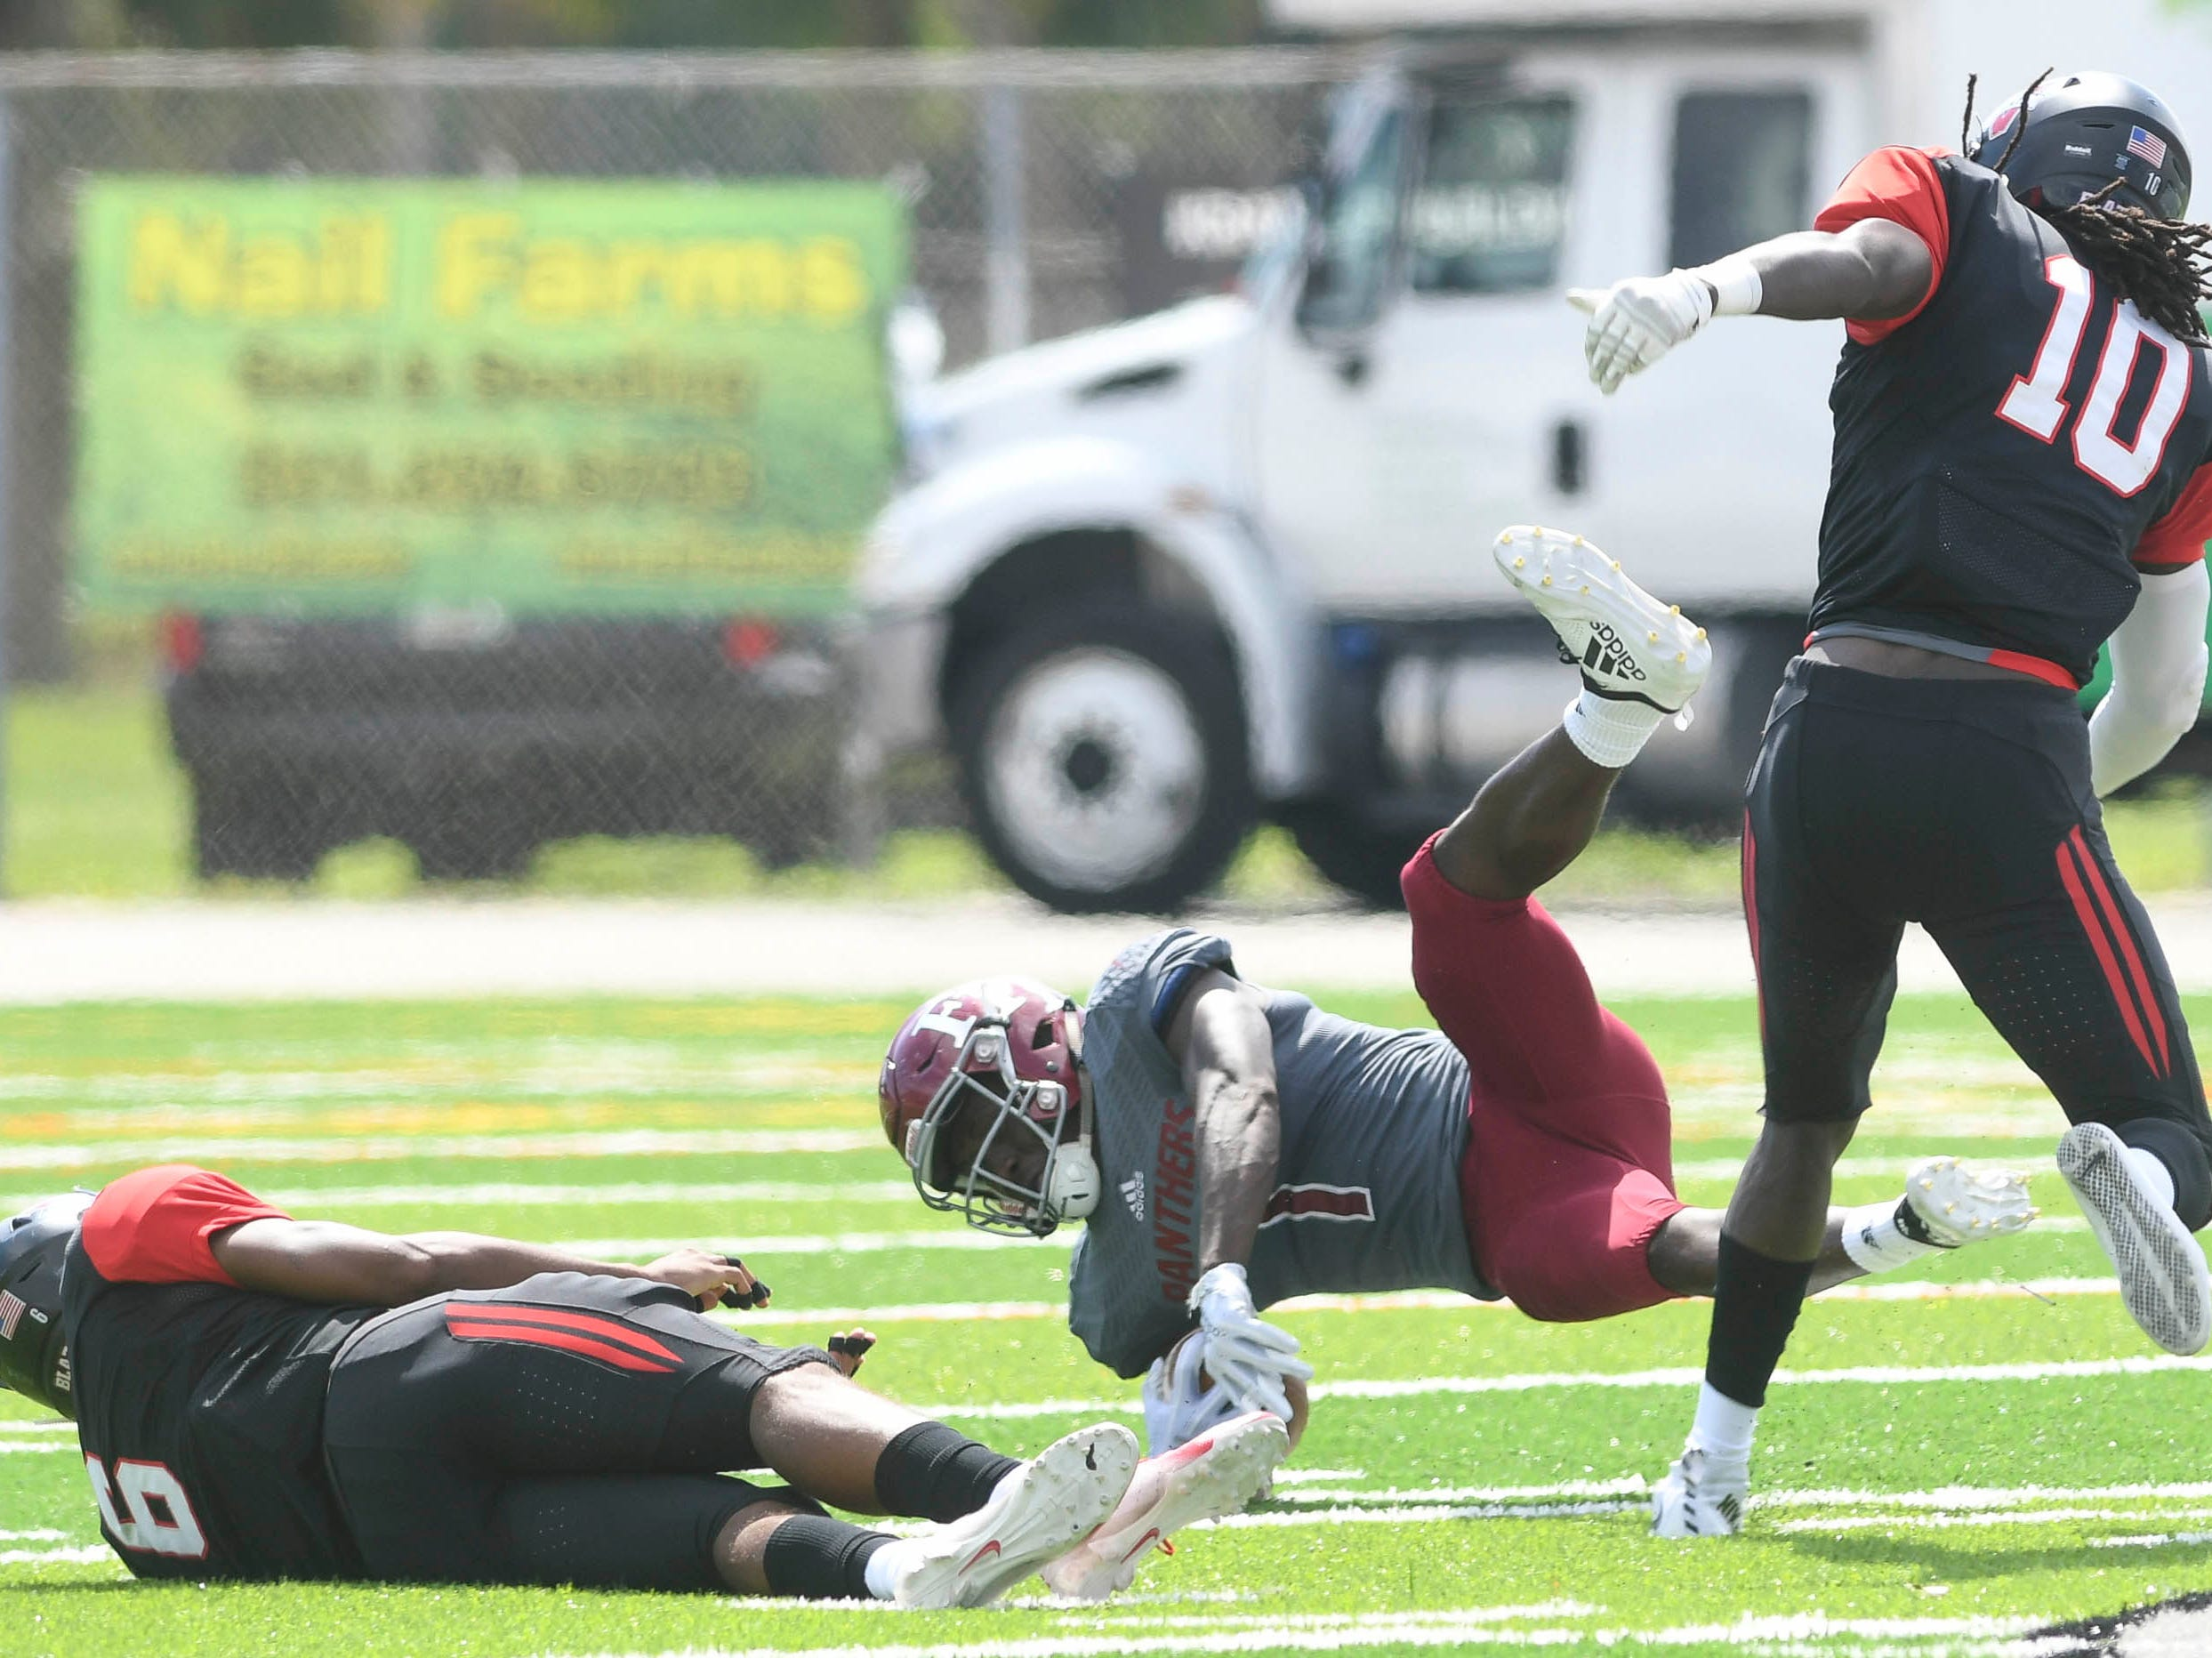 Romell Guerrier of Florida Tech catches a pass over the defense of Ravarius Rivers (6) and Stephen Denmark of Valdosta State during Saturday's game.